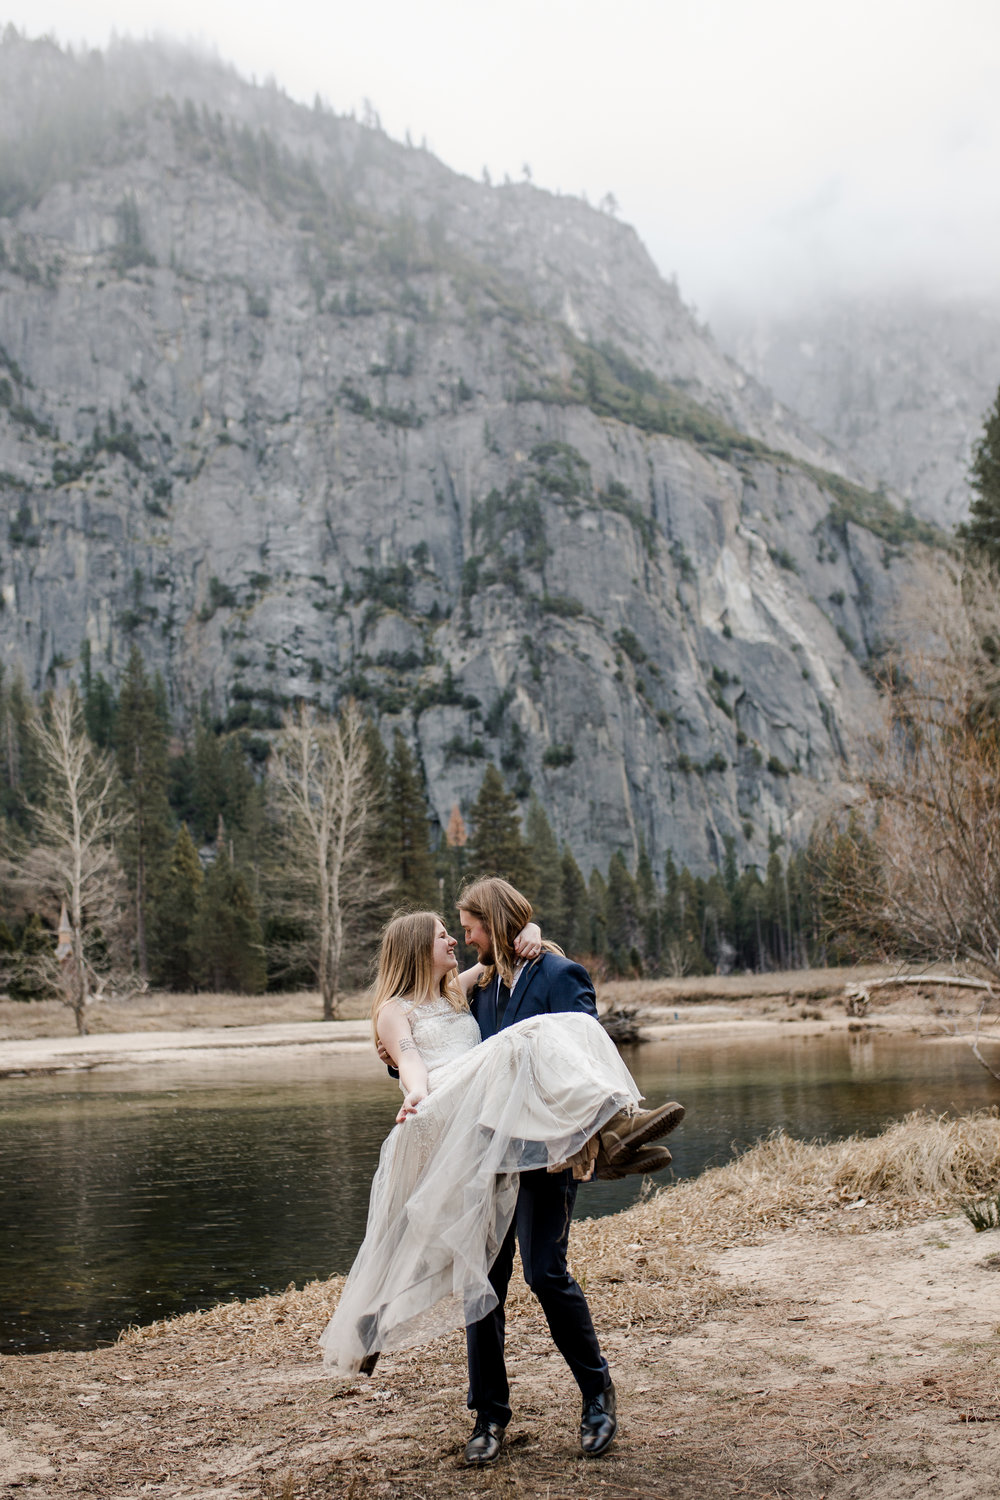 nicole-daacke-photography-yousemite-national-park-elopement-photographer-winter-cloud-moody-elope-inspiration-yosemite-valley-tunnel-view-winter-cloud-fog-weather-wedding-photos-42.jpg